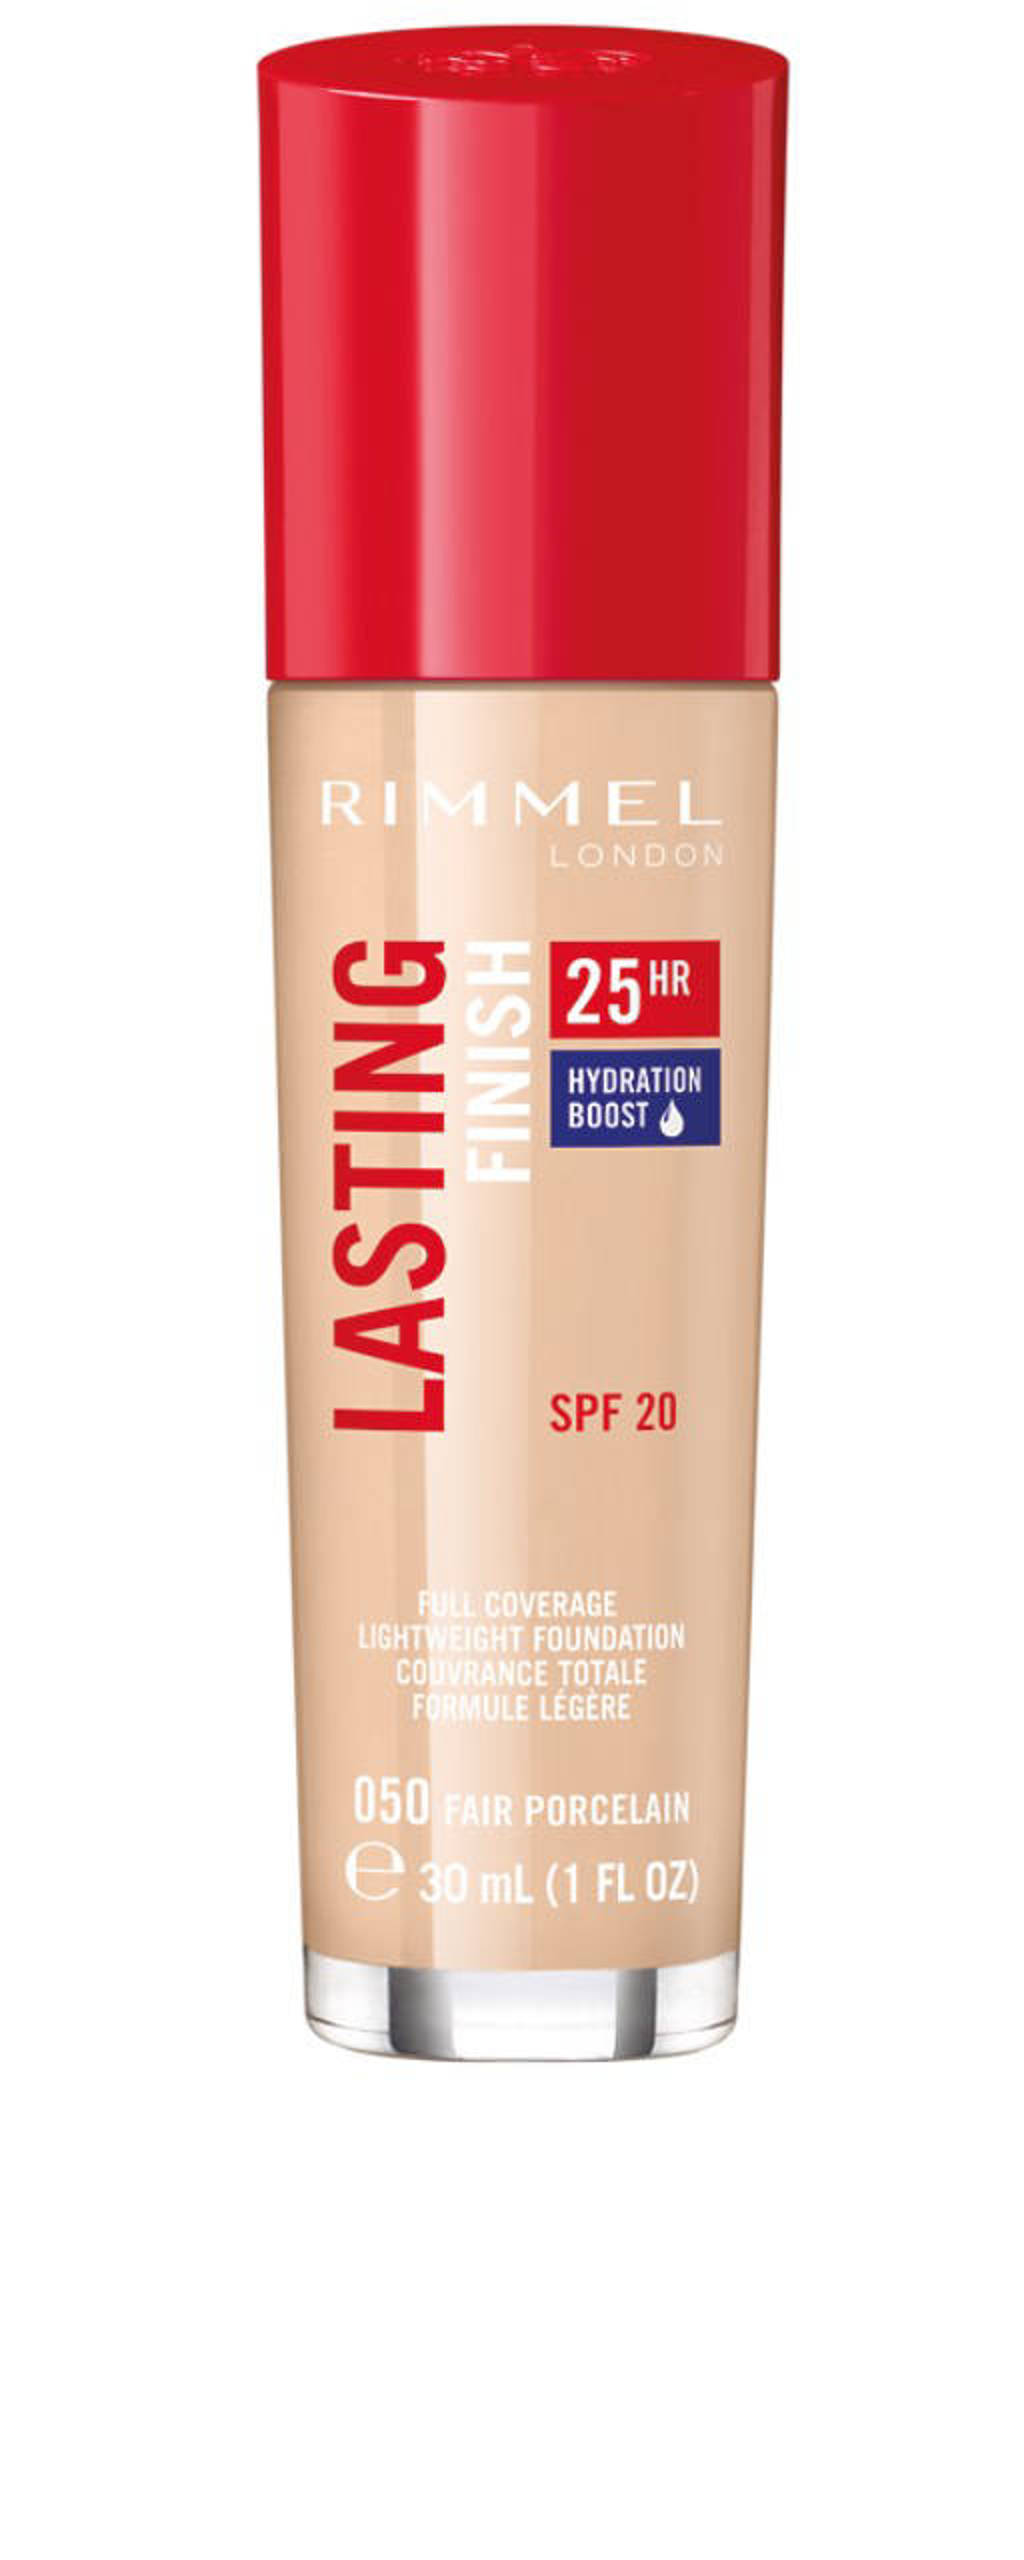 Rimmel London Lasting Finish Foundation - 050 Fair Porcelain